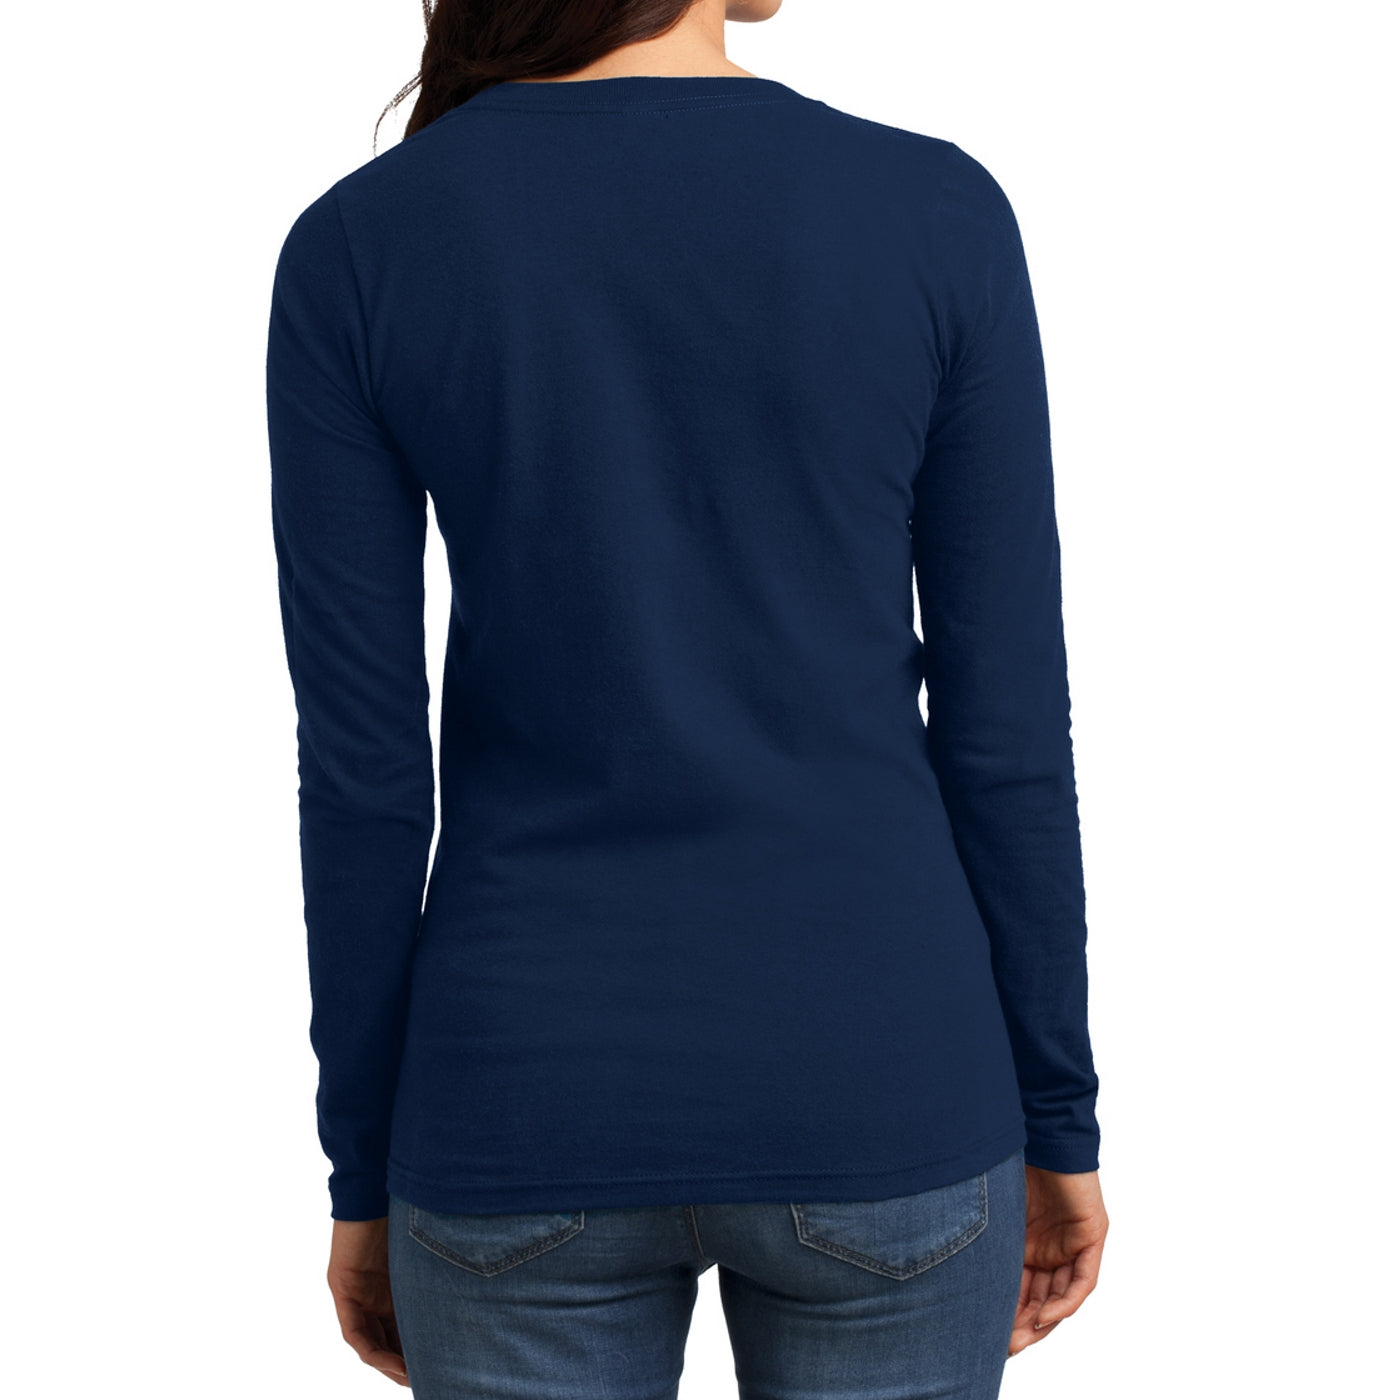 Women's Juniors The Concert Tee Long Sleeve V-Neck - New Navy